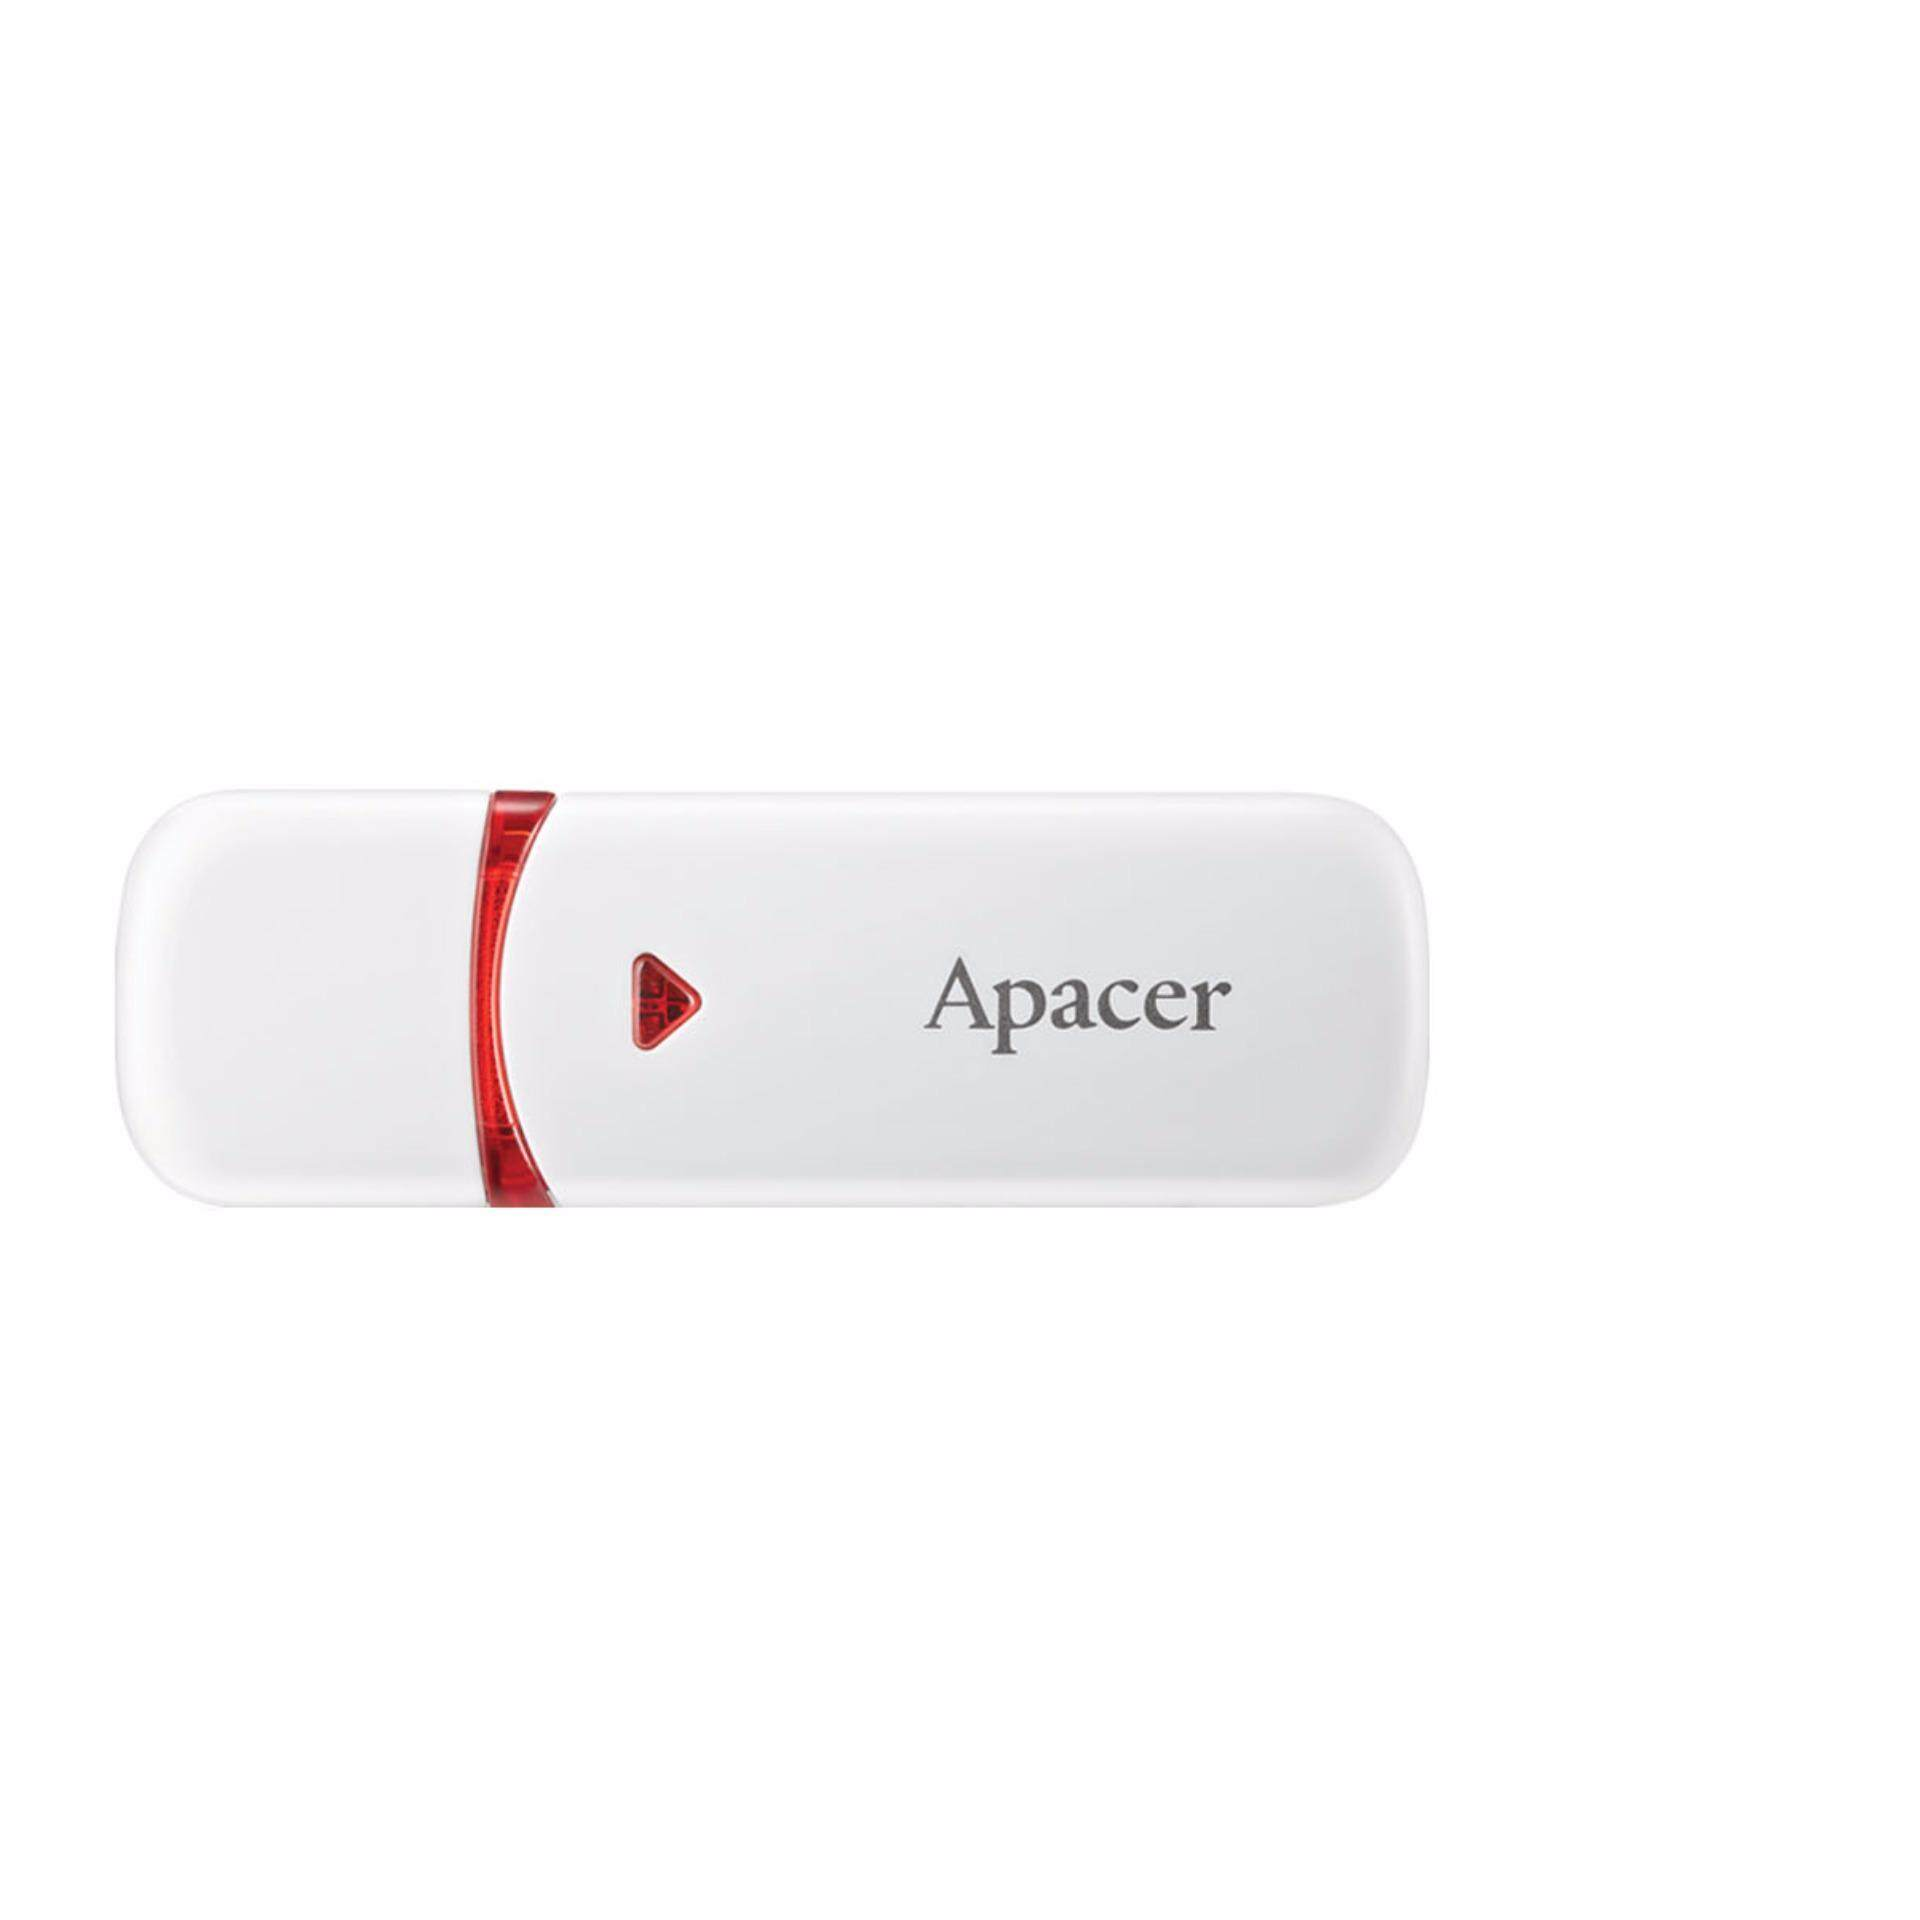 Apacer Flash Drive Sterno AH333  32GB - White